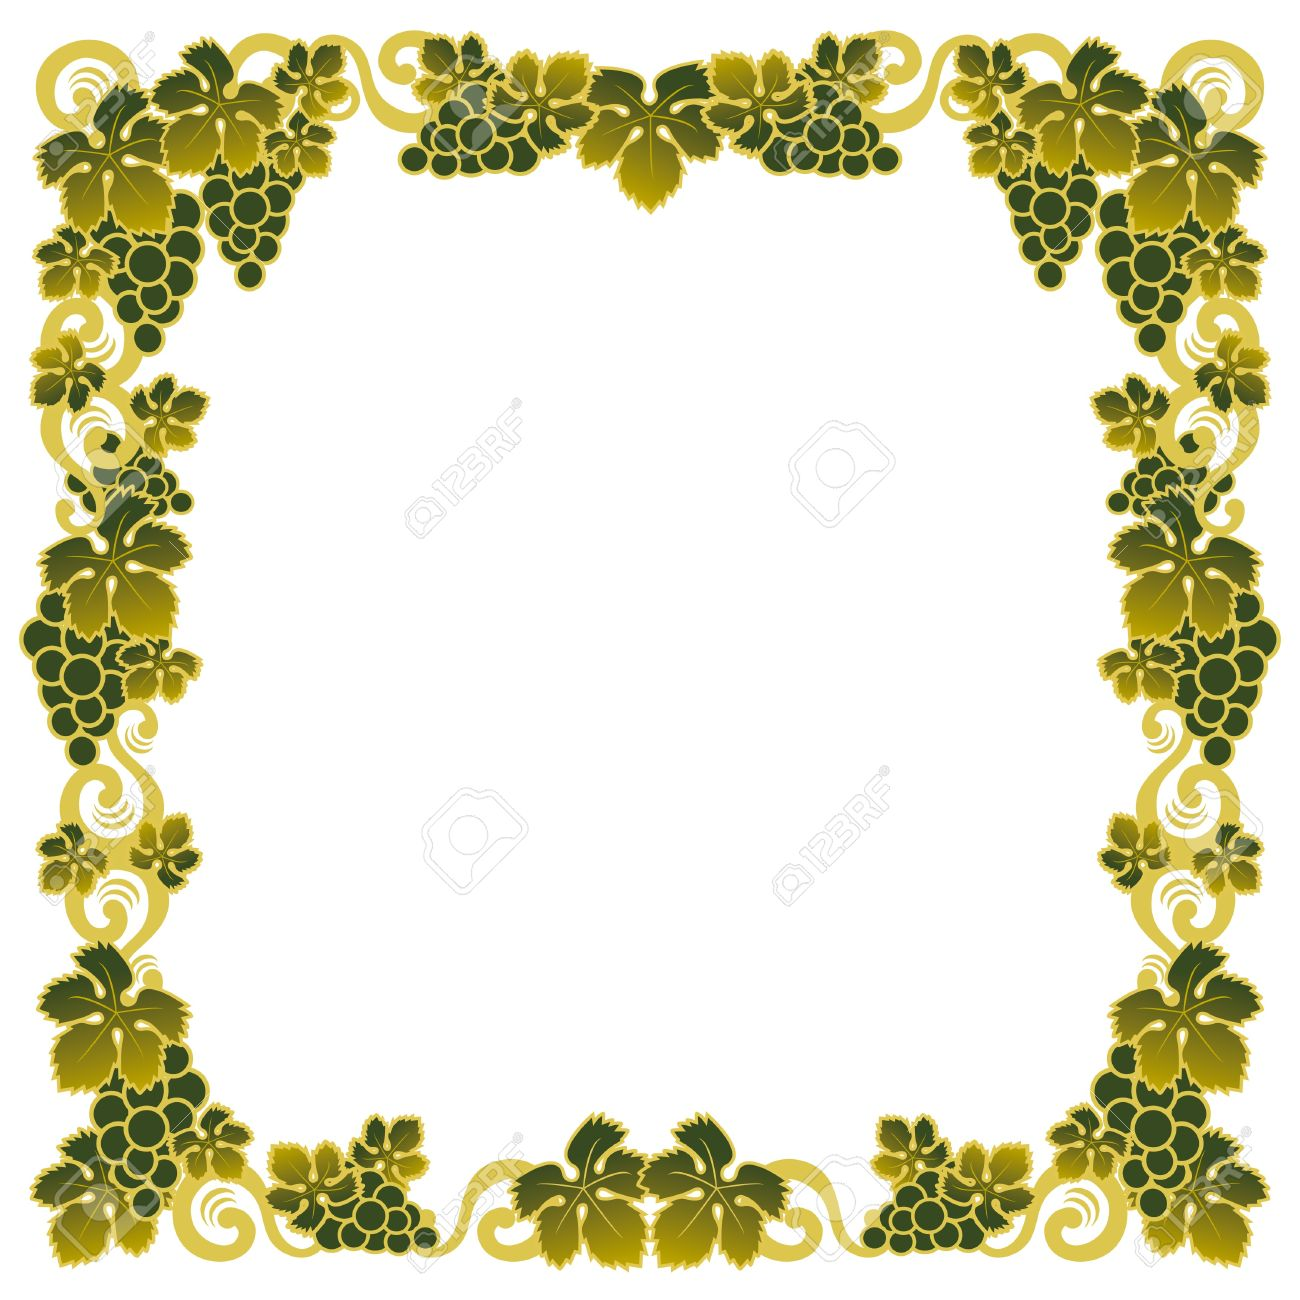 border with a bunch of green grapes - 7739568